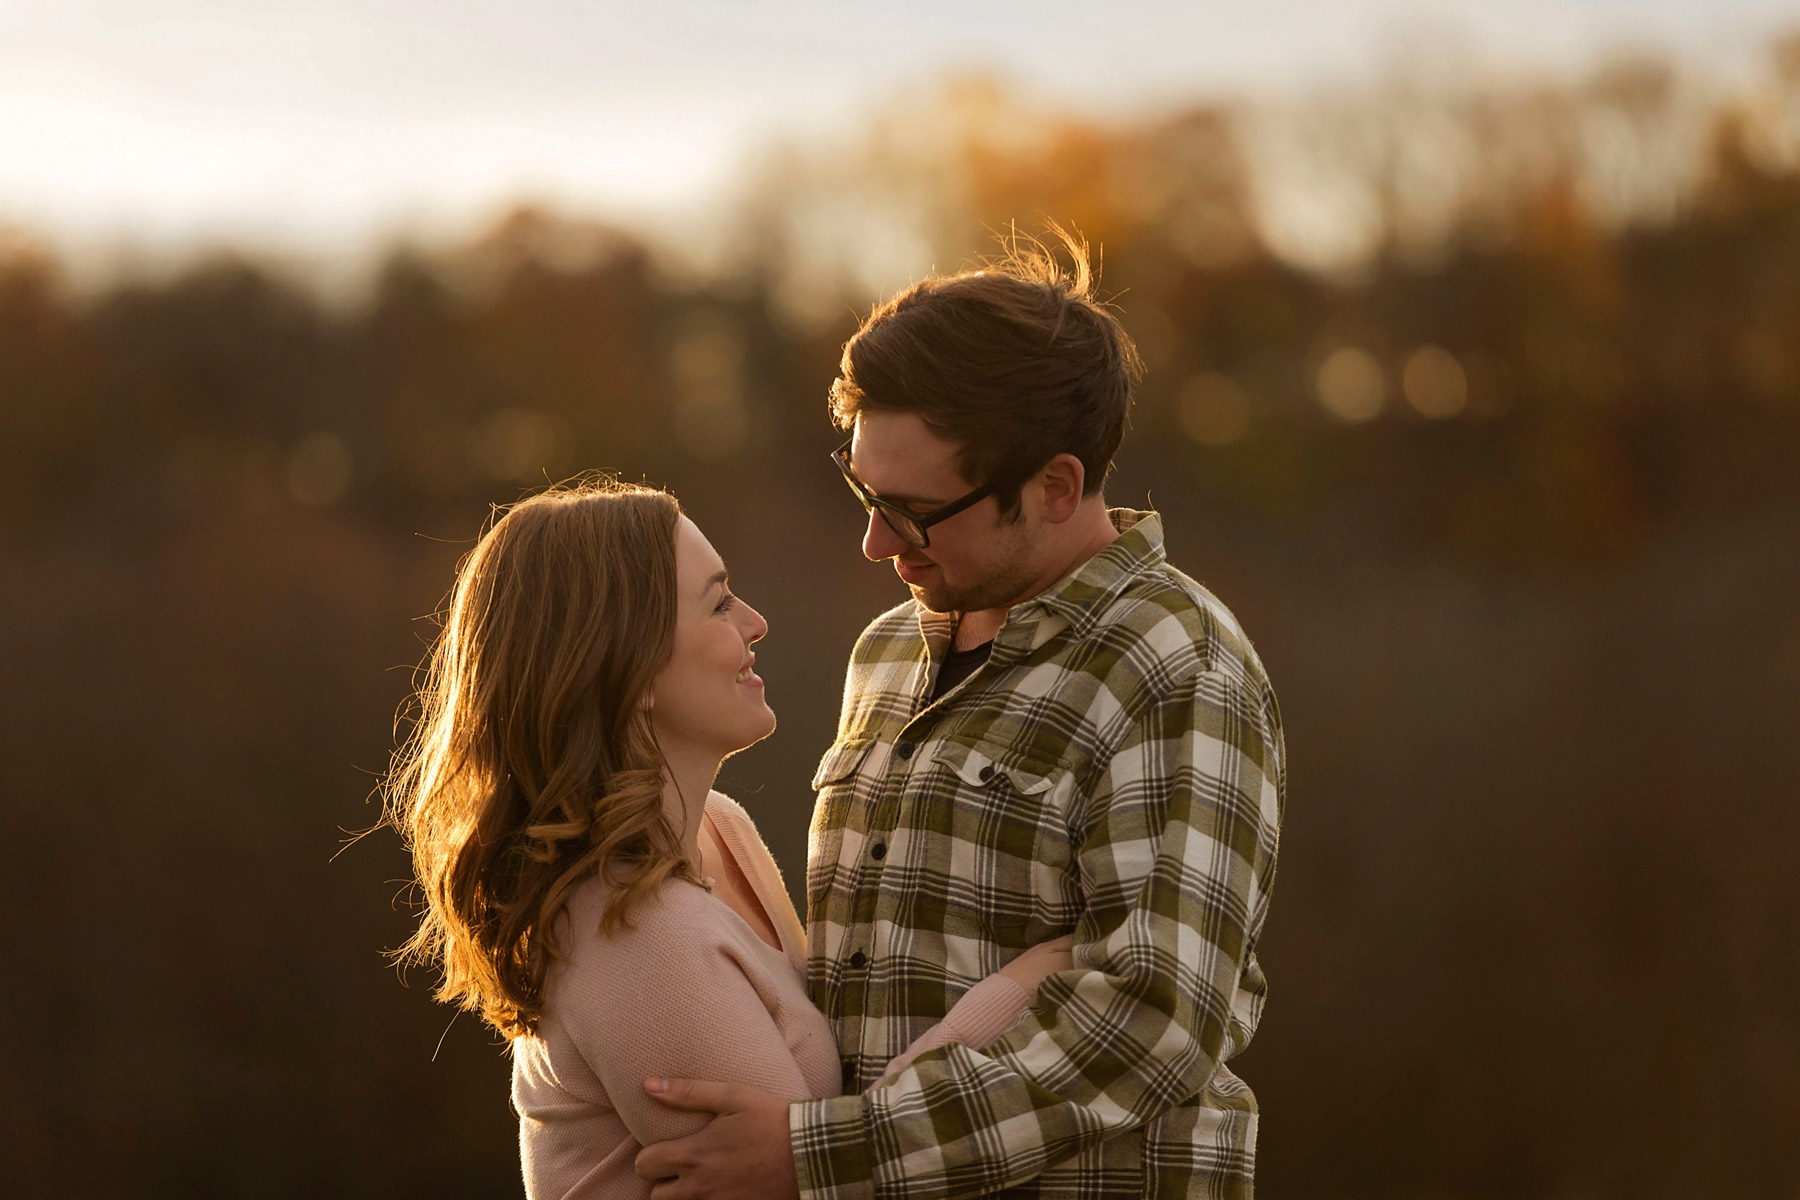 Bucks_county_engagement_session_Tinicum_Park_couple_laughs_and_hugs.JPG